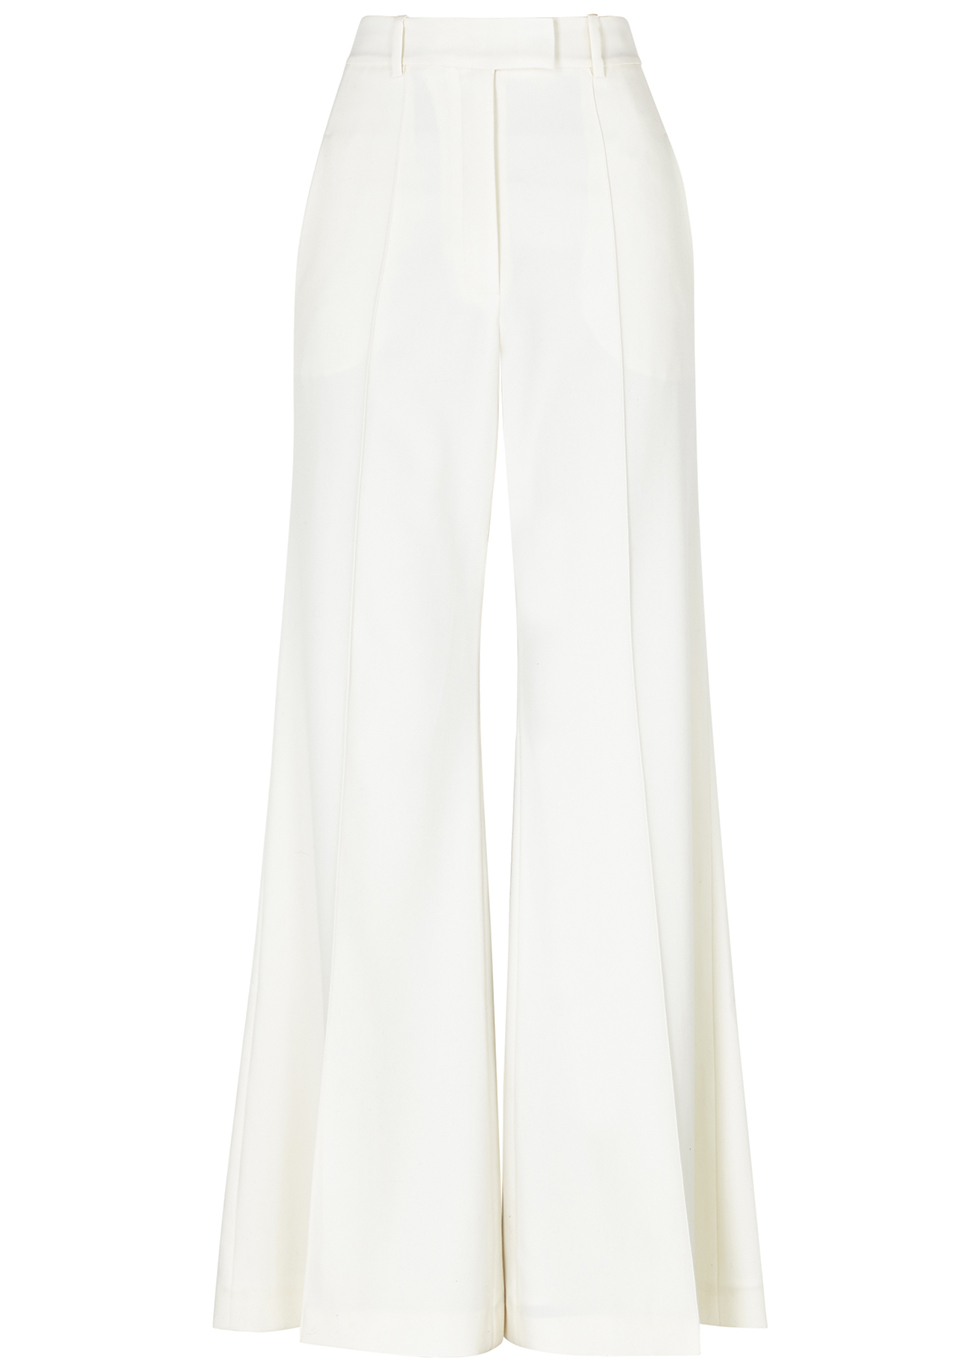 Lincoln ivory flared wool trousers